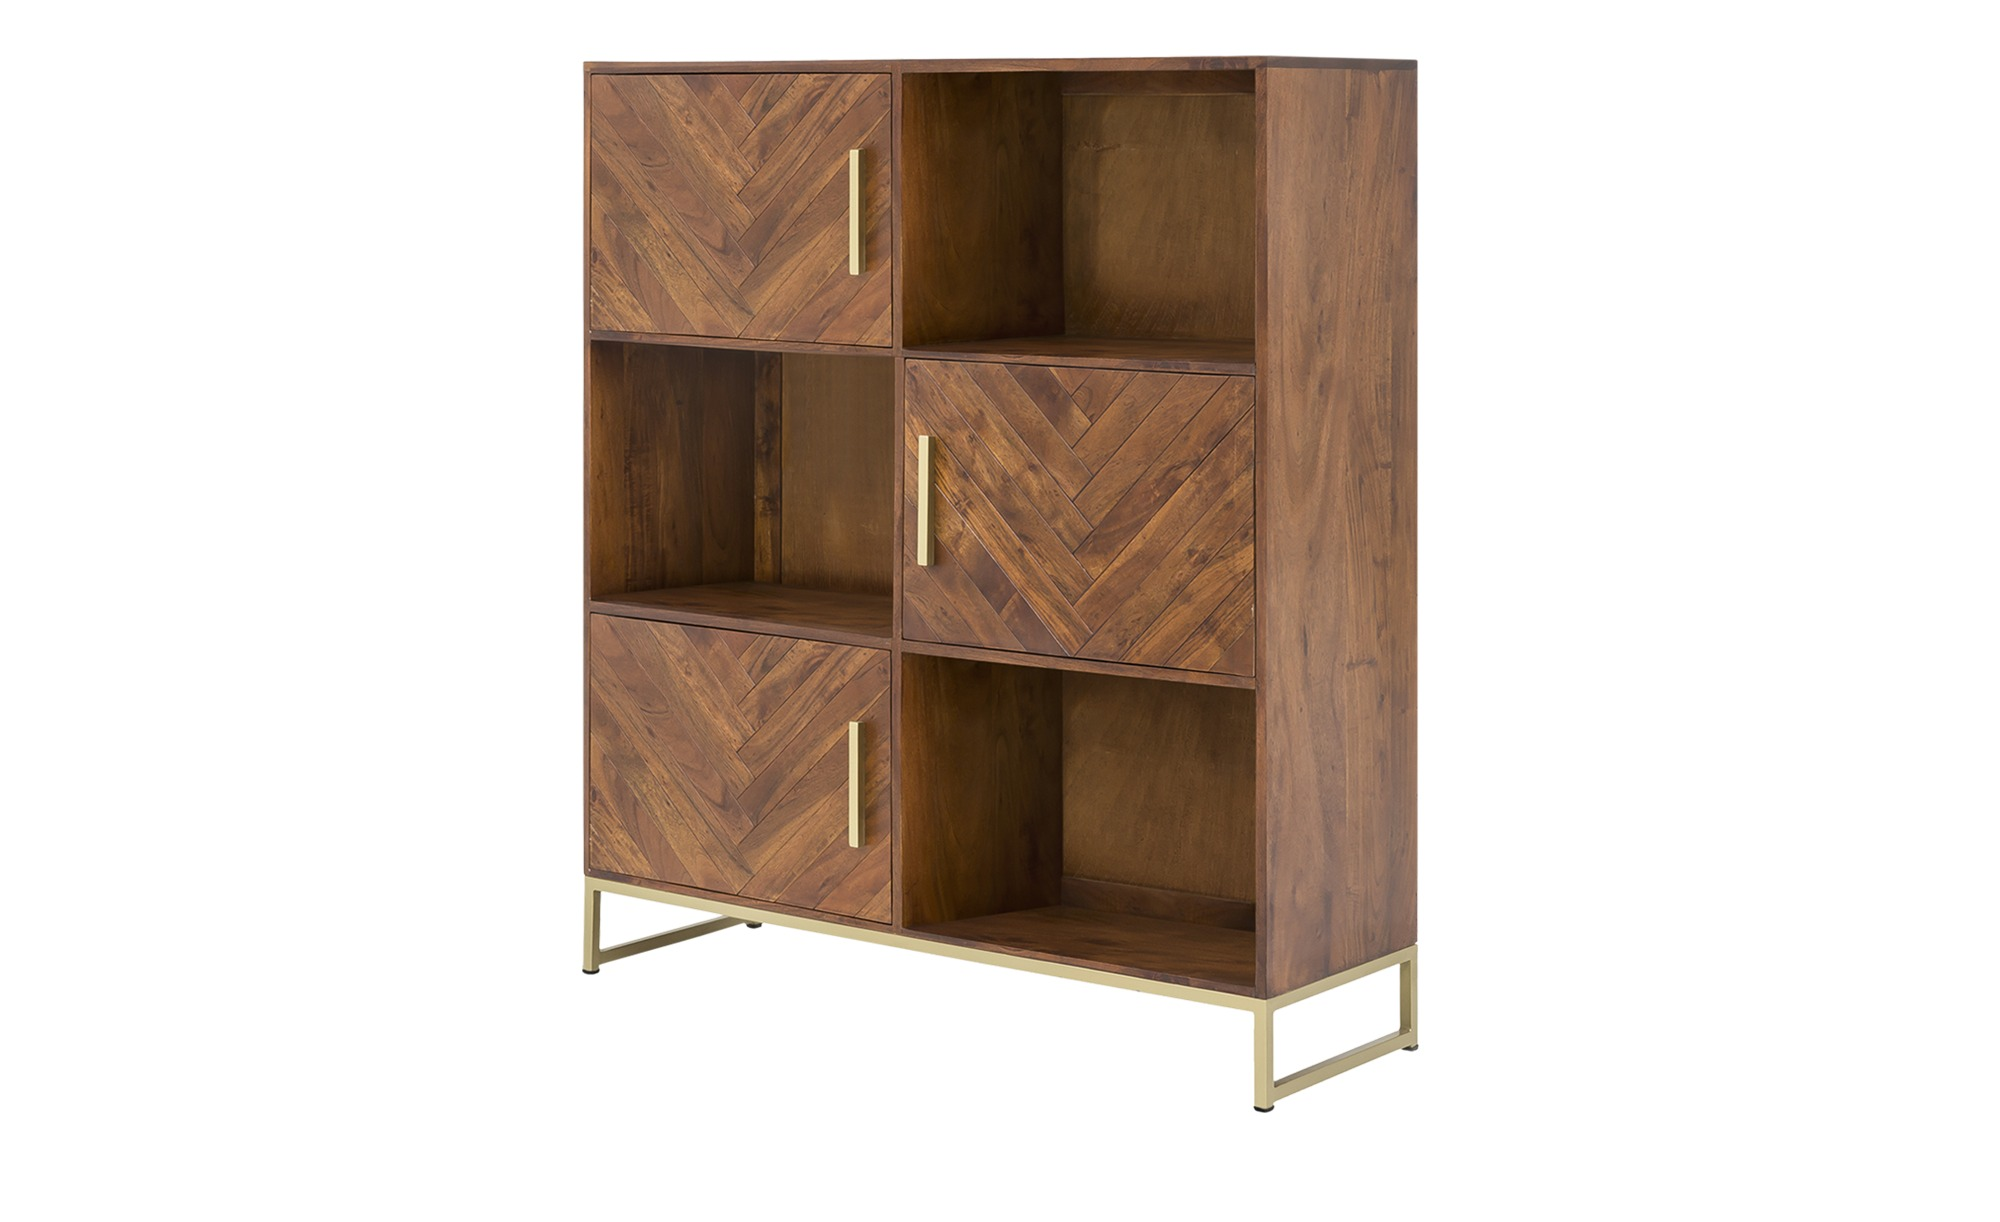 Highboard  Calatria ¦ holzfarben ¦ Maße (cm): B: 120 H: 140 T: 39 Kommoden & Sideboards > Highboards - Höffner